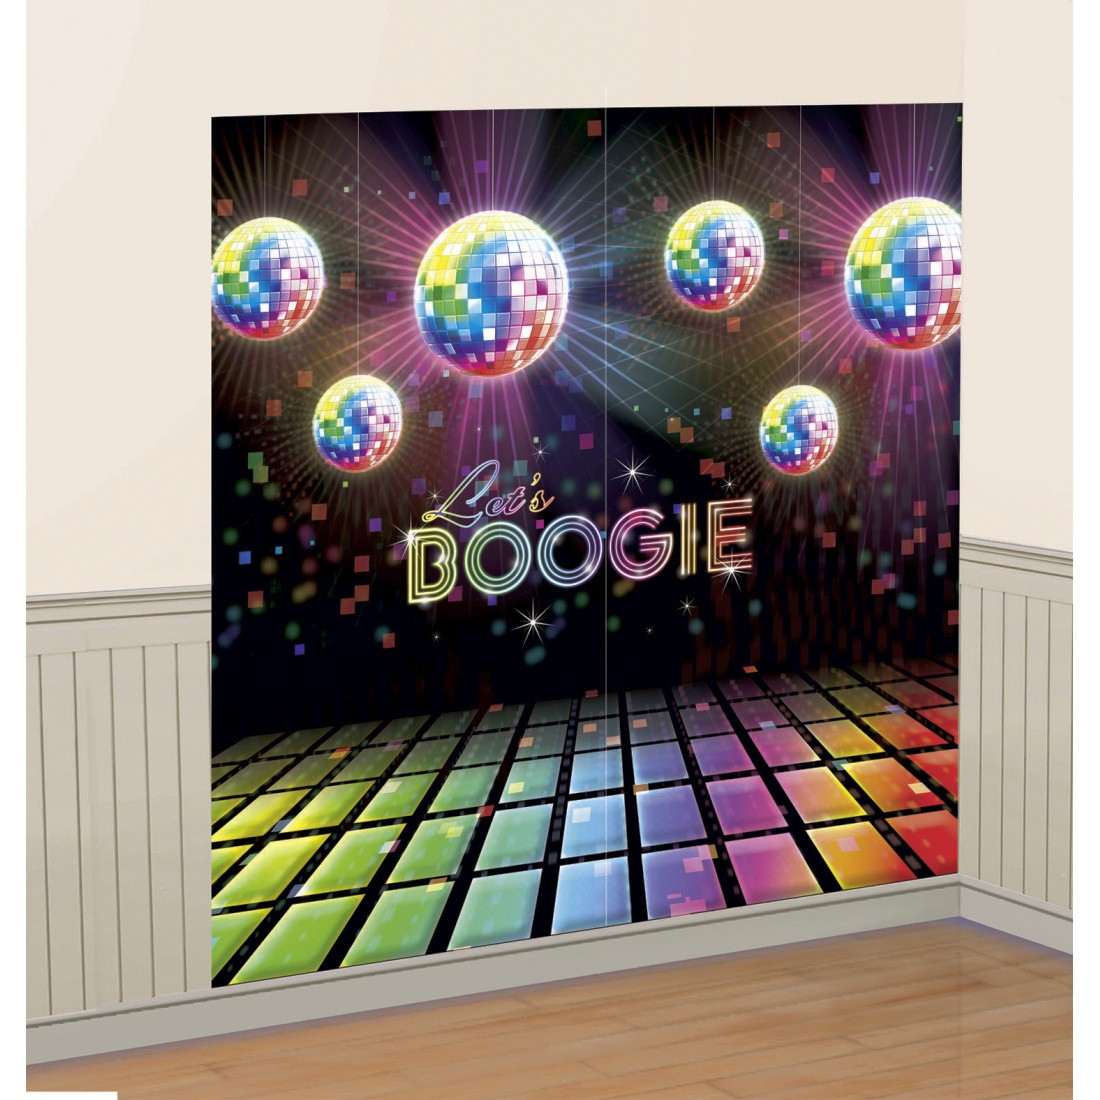 1 65 x 1 65 m 70er jahre wanddeko folie disco wandbild discokugel wandfolie 70 s wanddekoration. Black Bedroom Furniture Sets. Home Design Ideas